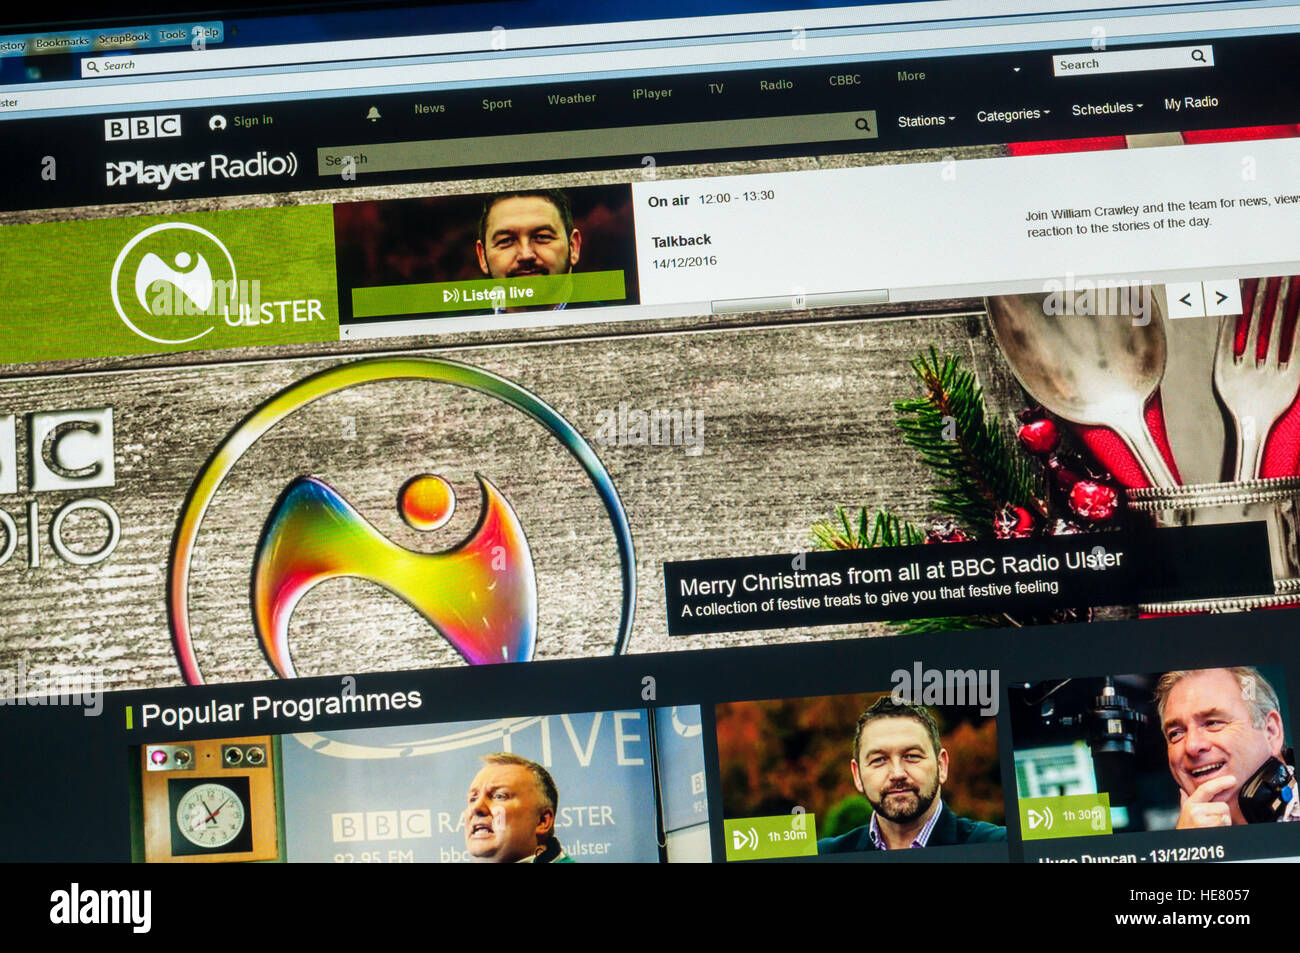 The website of BBC Radio Ulster broadcasting in Northern Ireland. - Stock Image